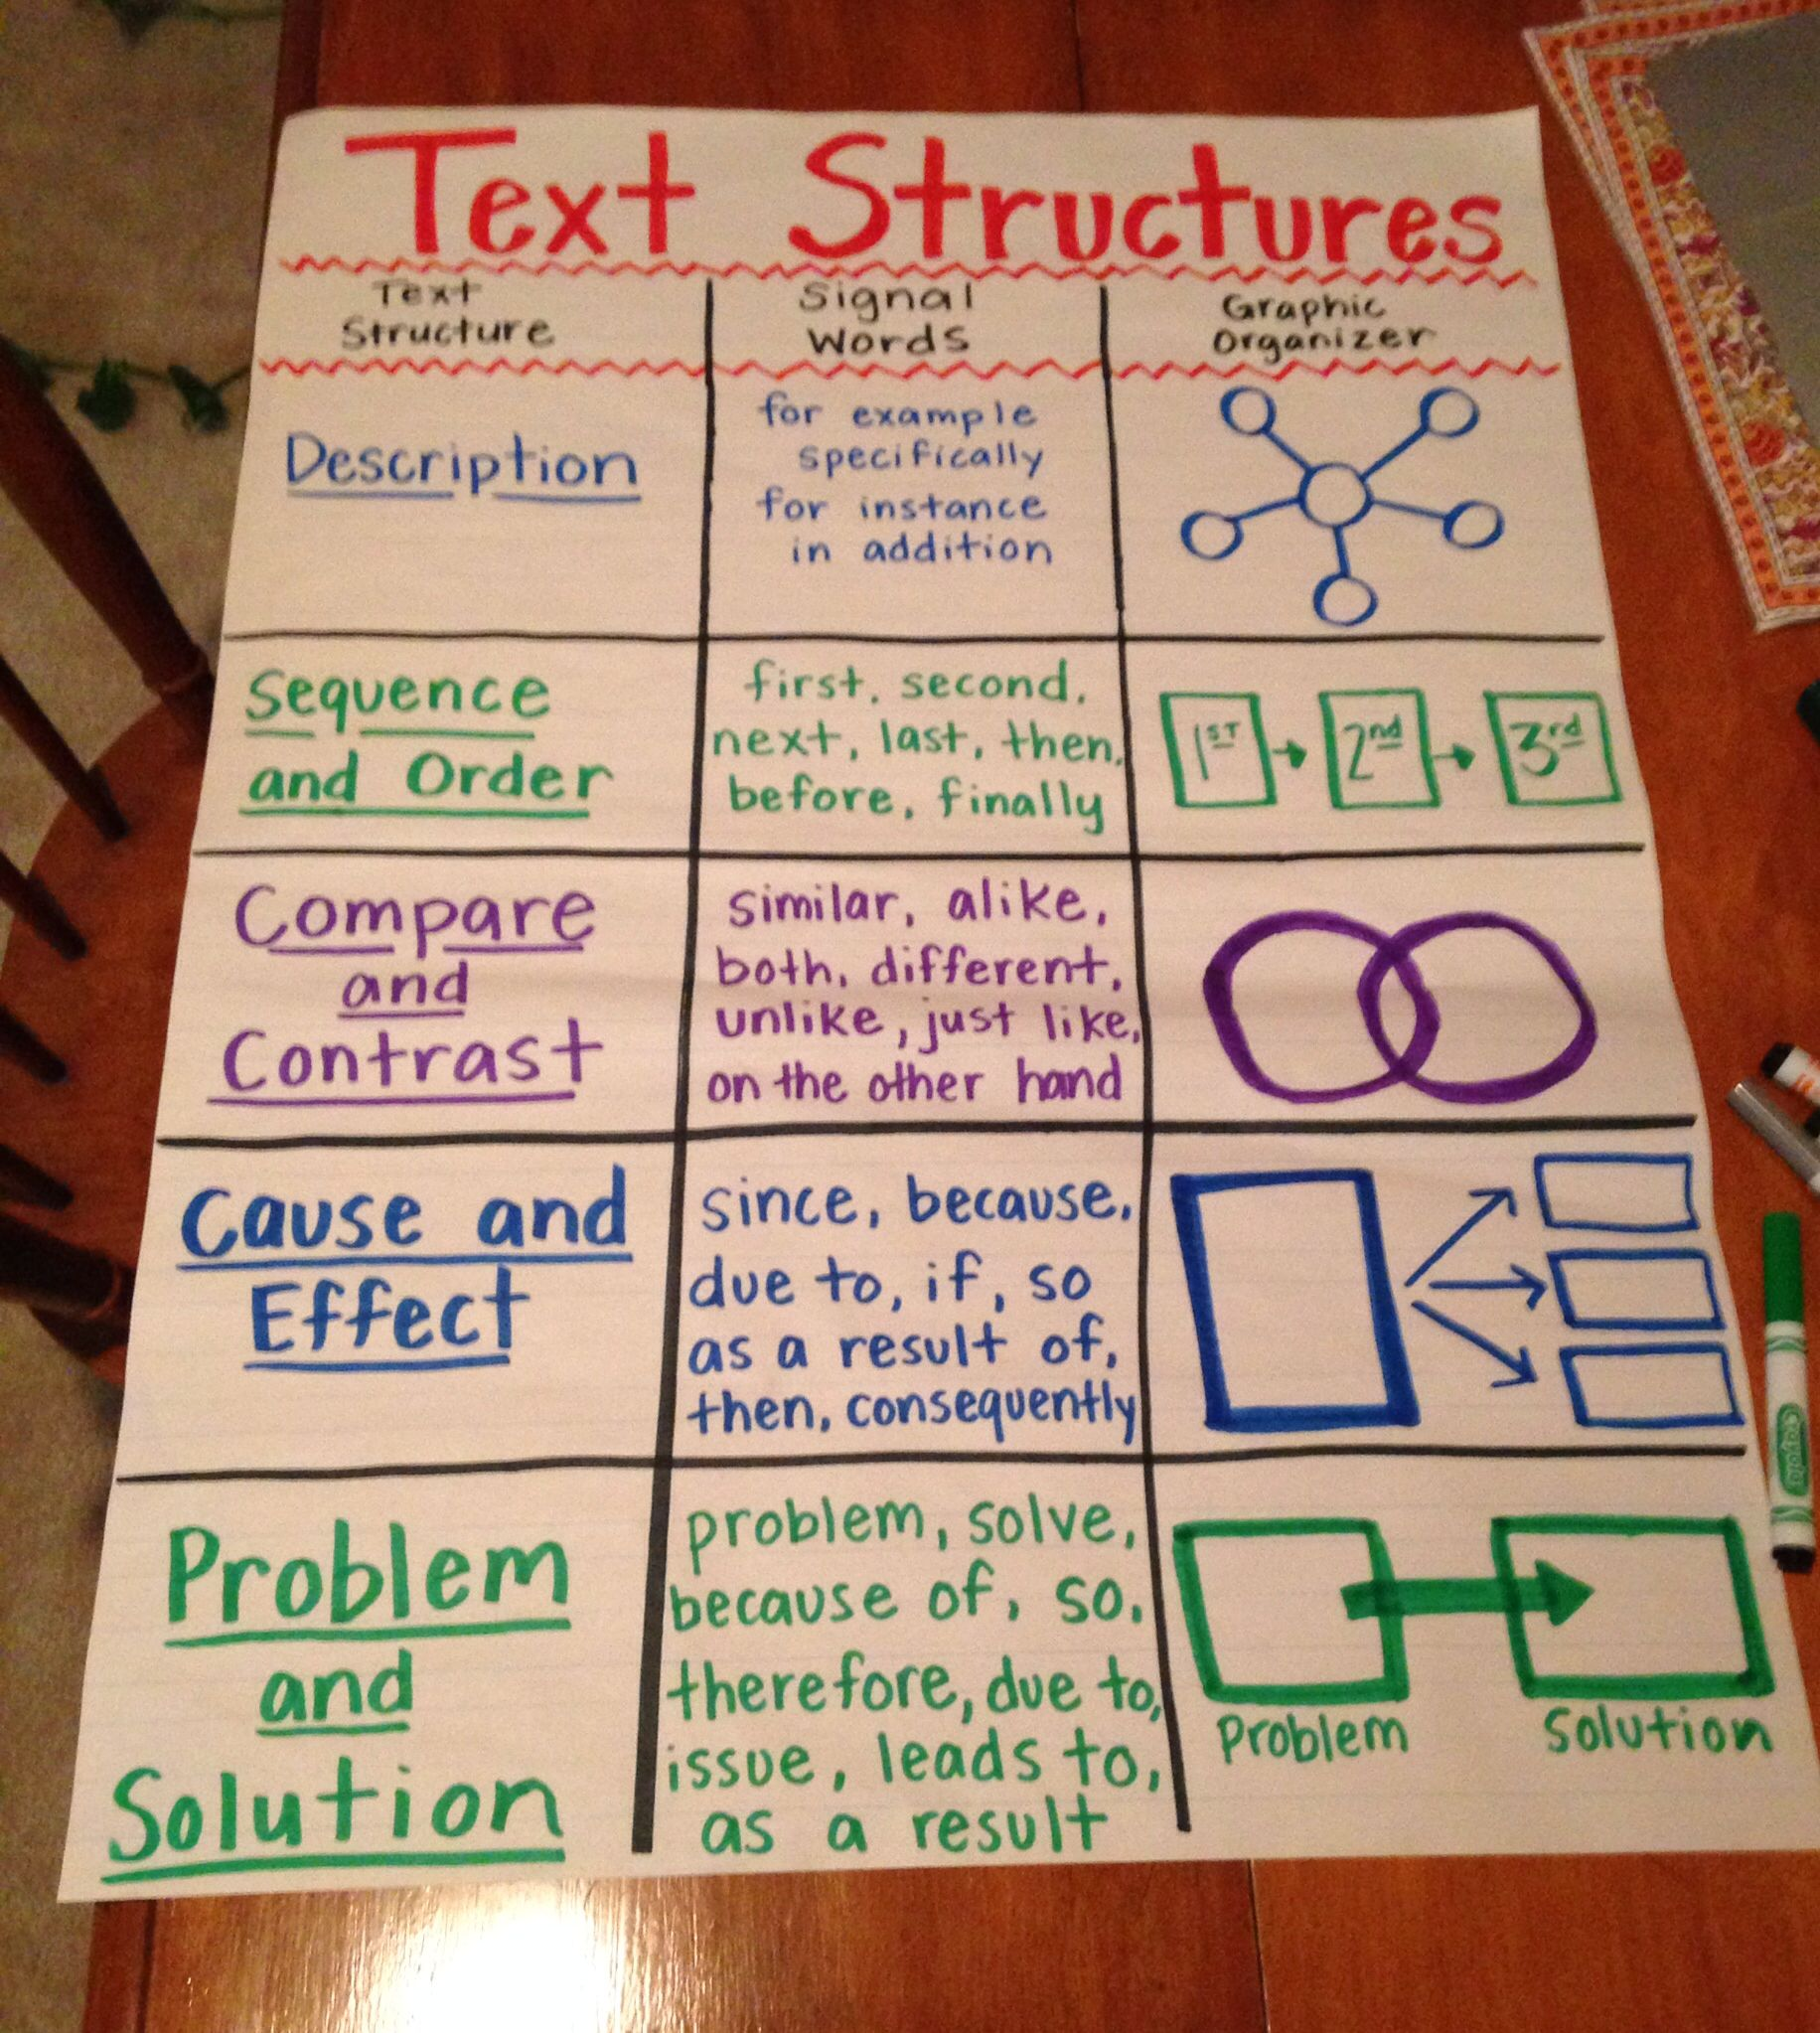 text structures anchor chart pinterest. Black Bedroom Furniture Sets. Home Design Ideas